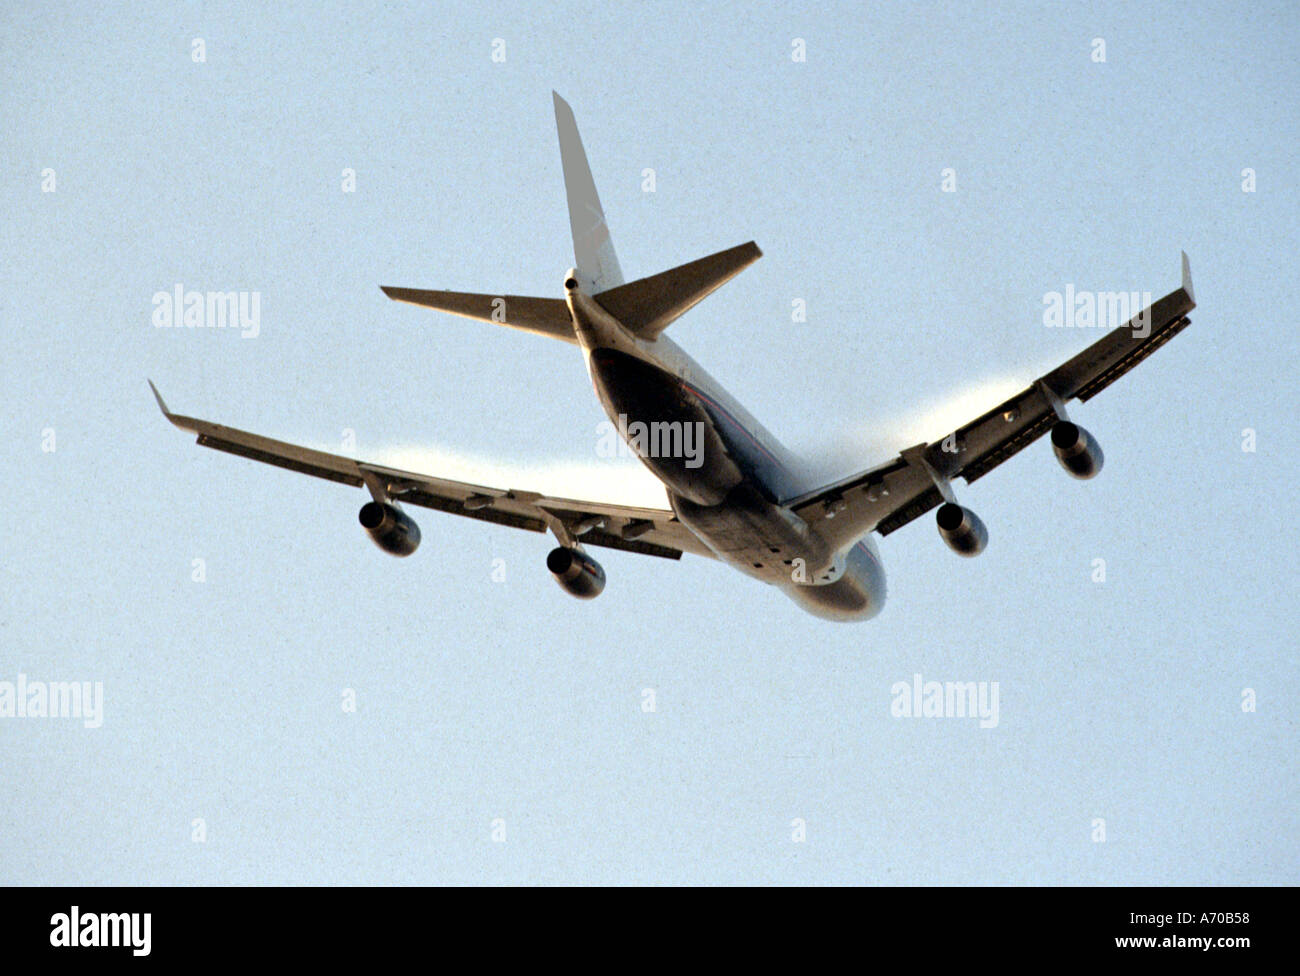 Passenger Aircraft in Flight - Stock Image